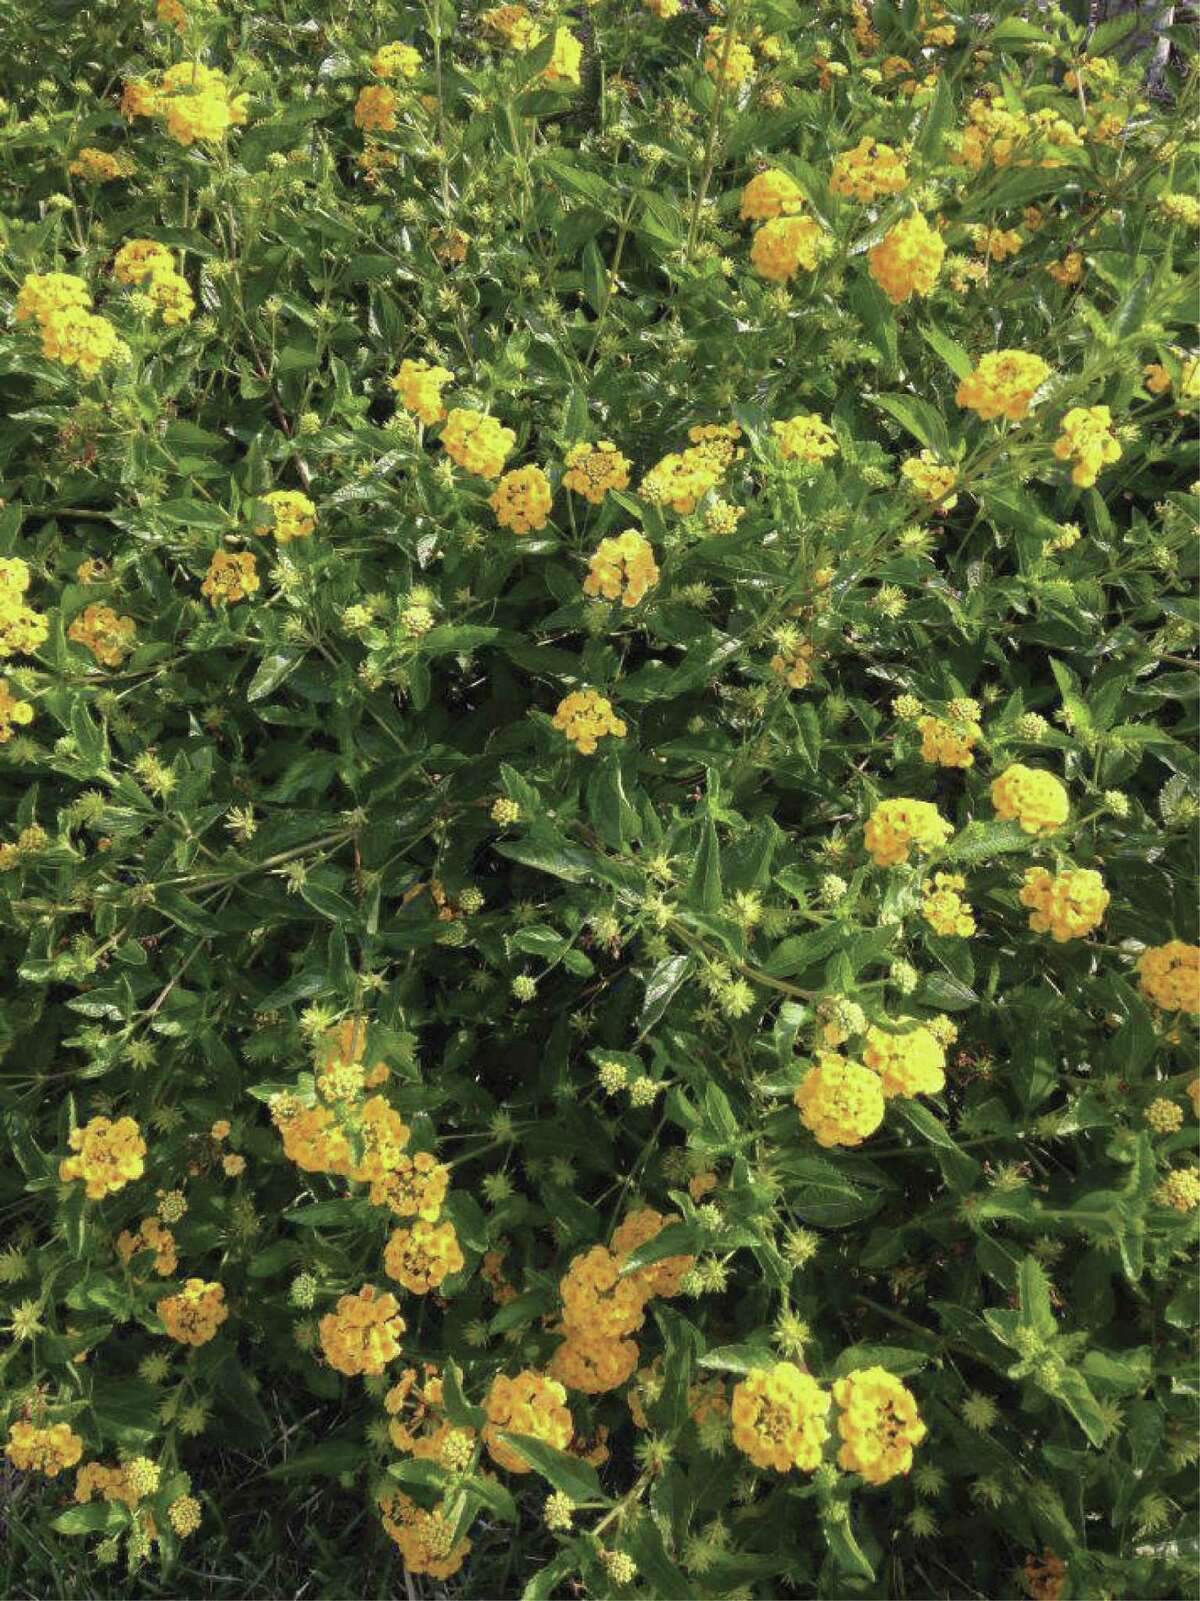 Lantana grows in gardens, fields and woodland areas in our county. The two varieties receiving Superstar status are New Gold TM Lantana and Trailing Lantana.